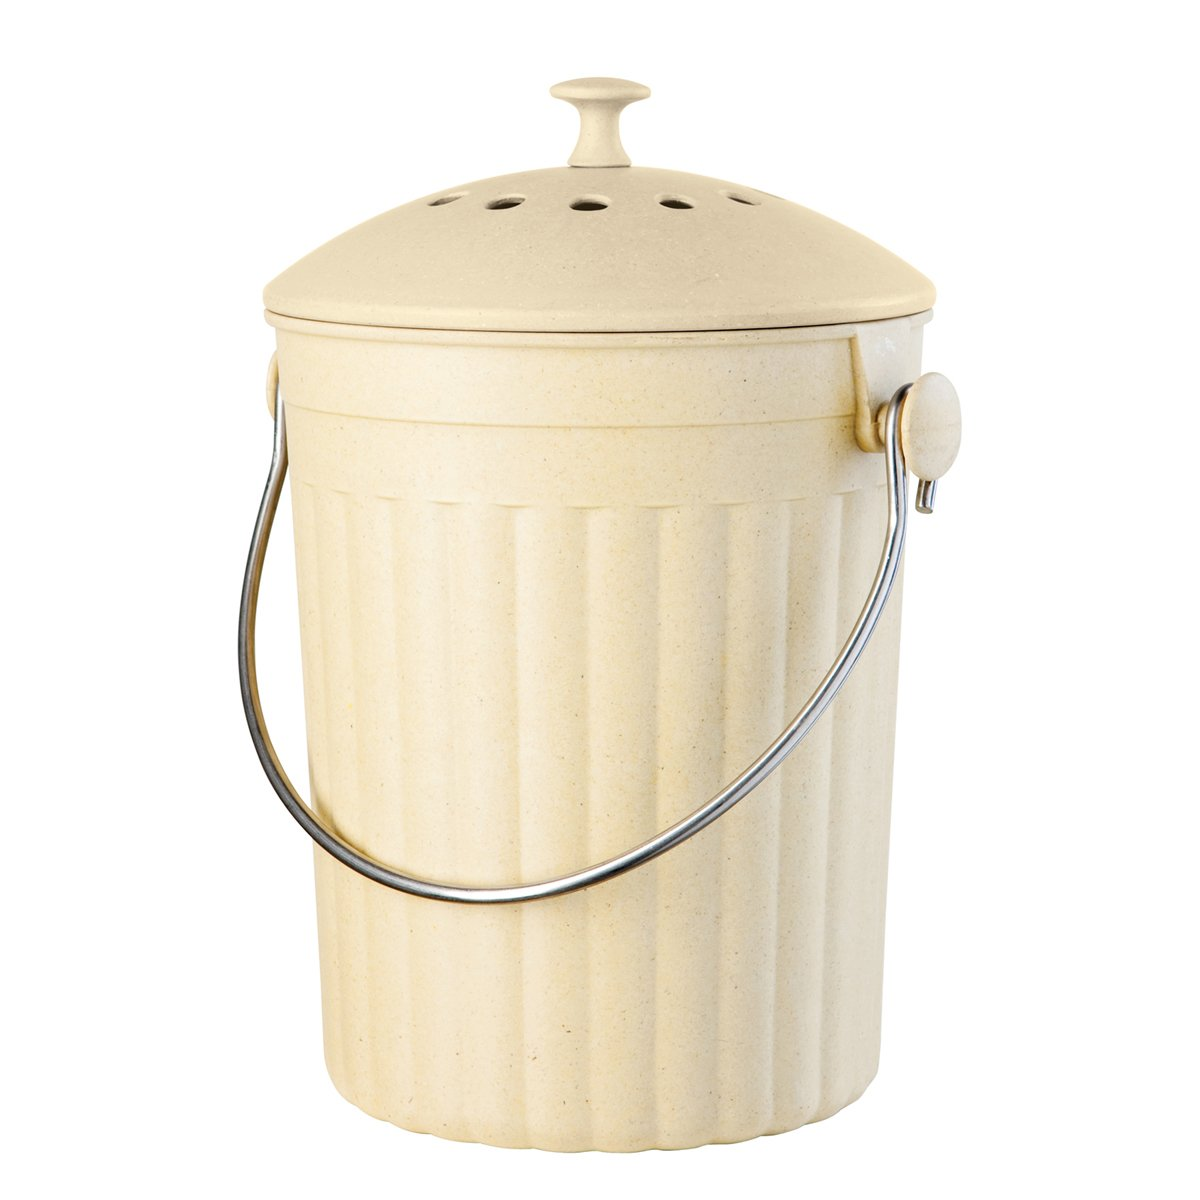 Oggi Countertop Compost Pail With Charcoal Filter Made From Bamboo Fiber New Ebay